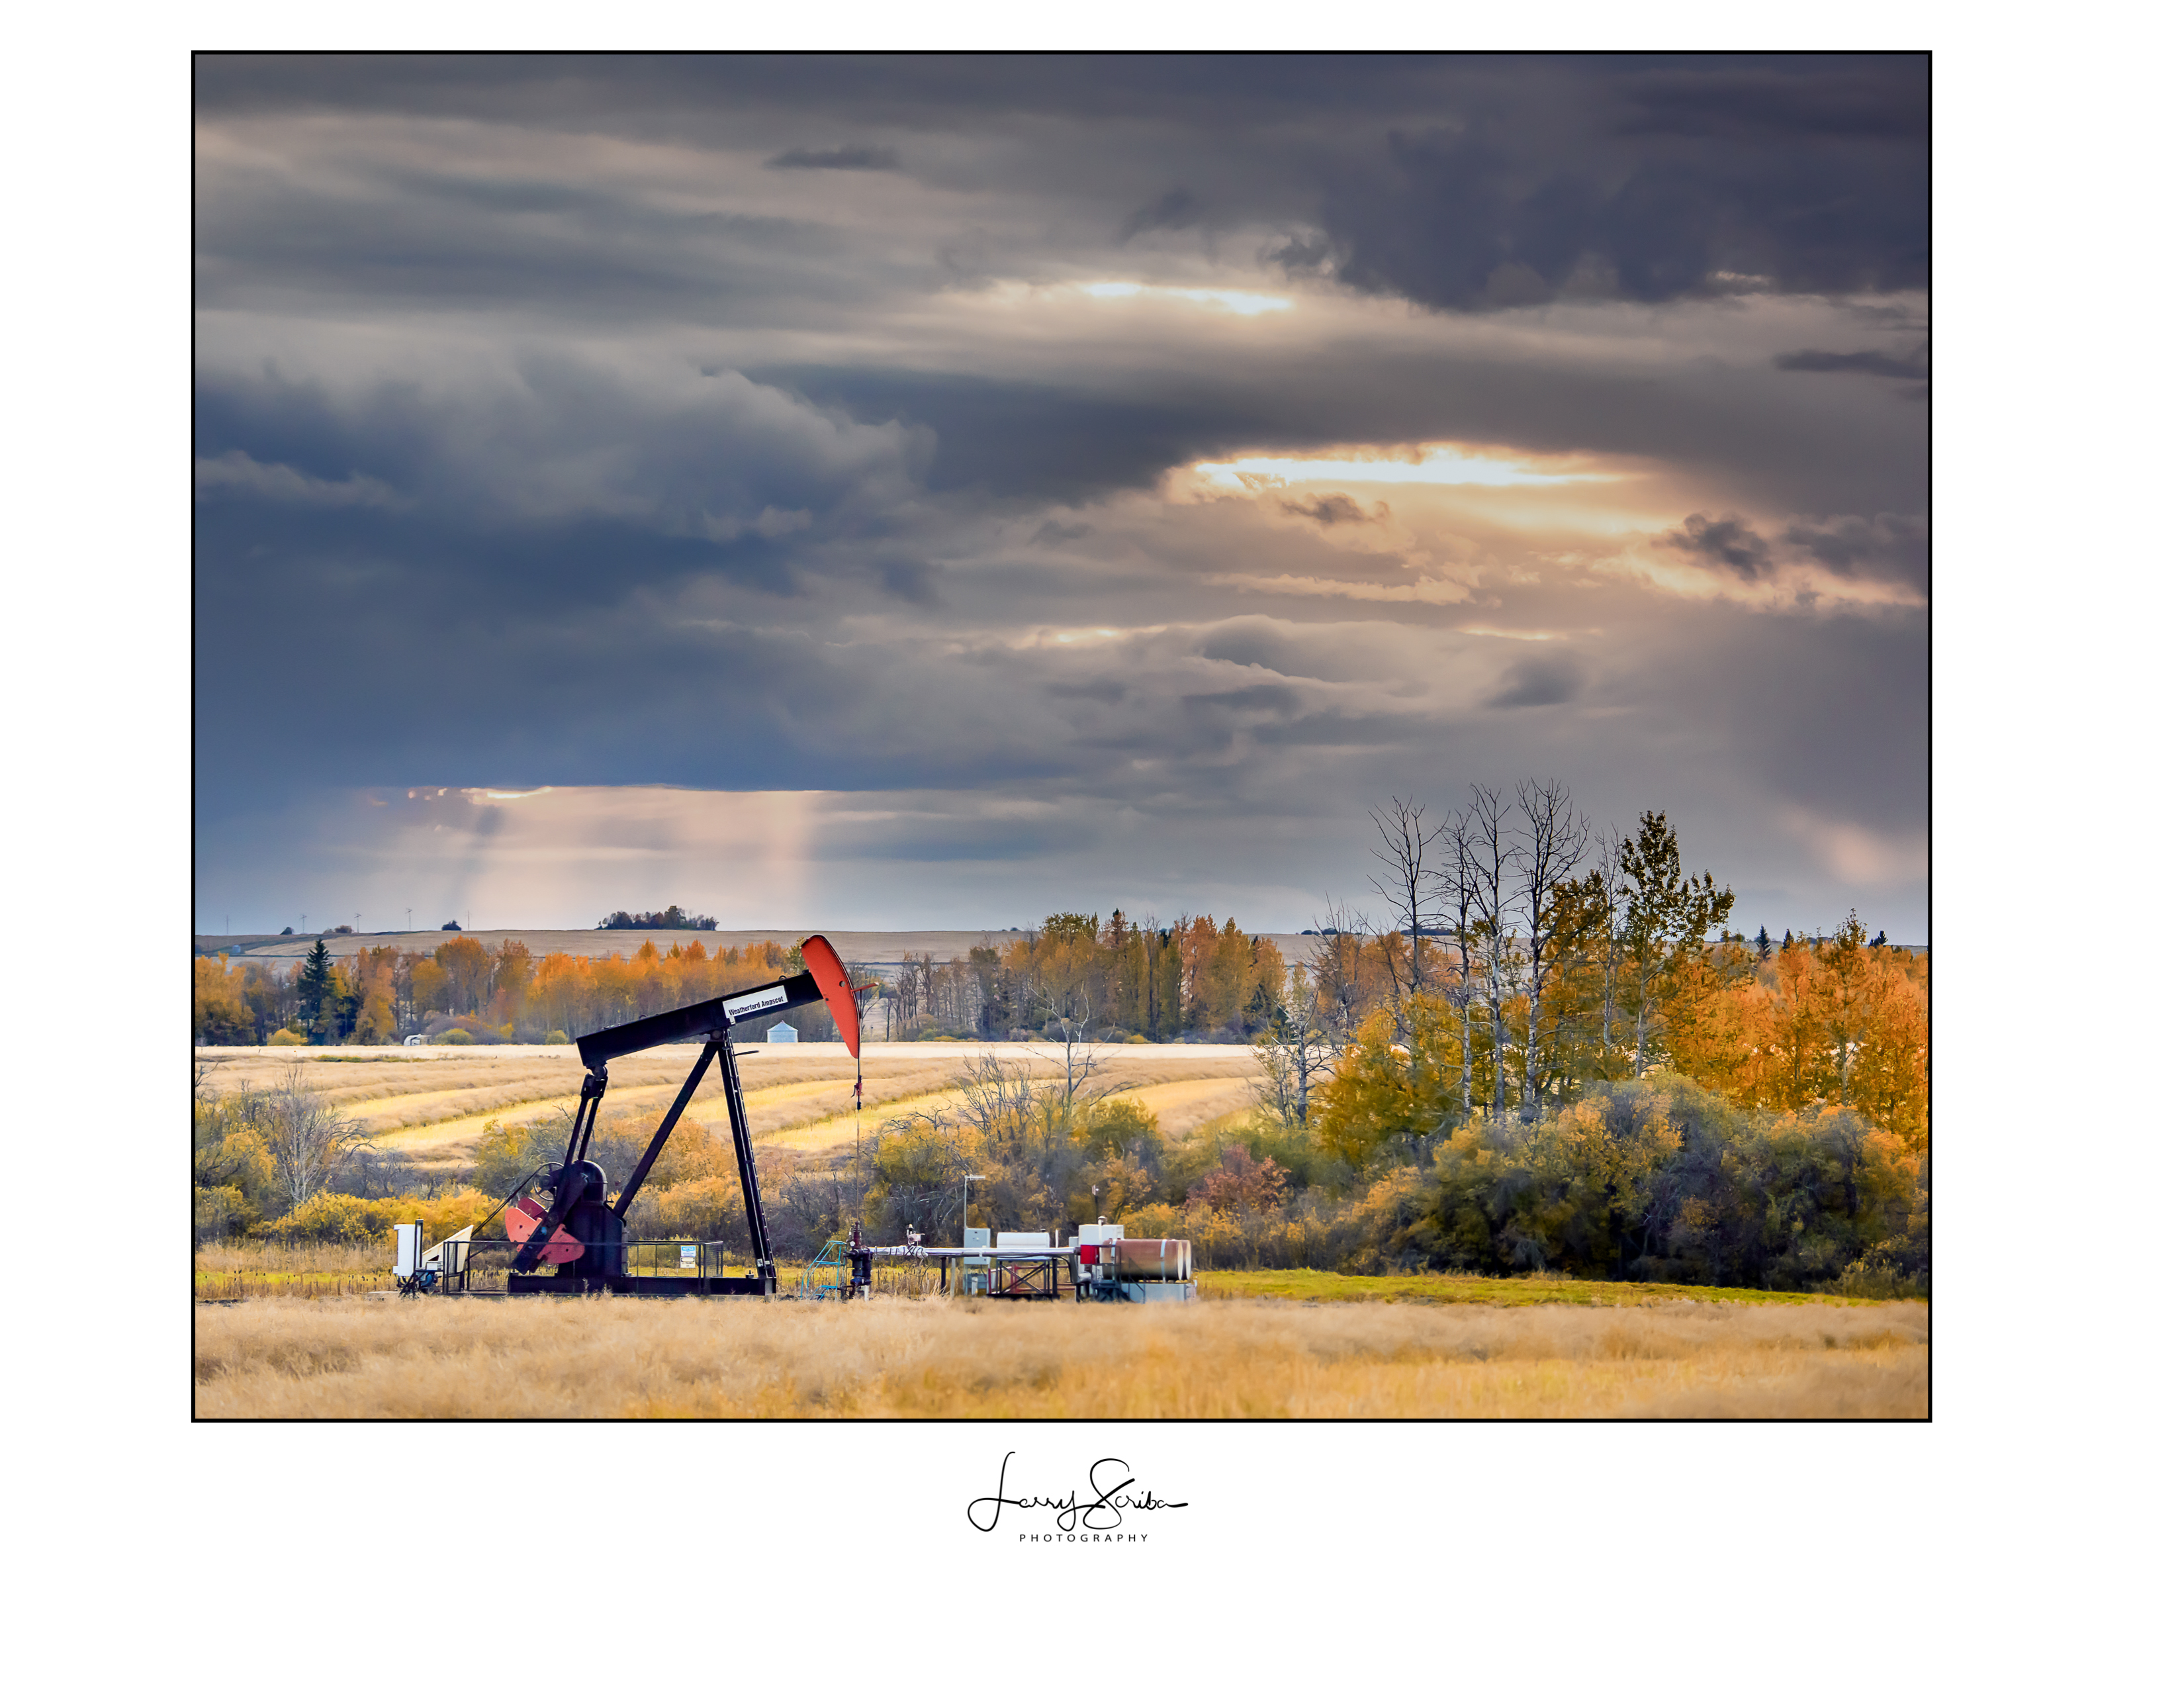 Alberta Resources (Pumpjack)